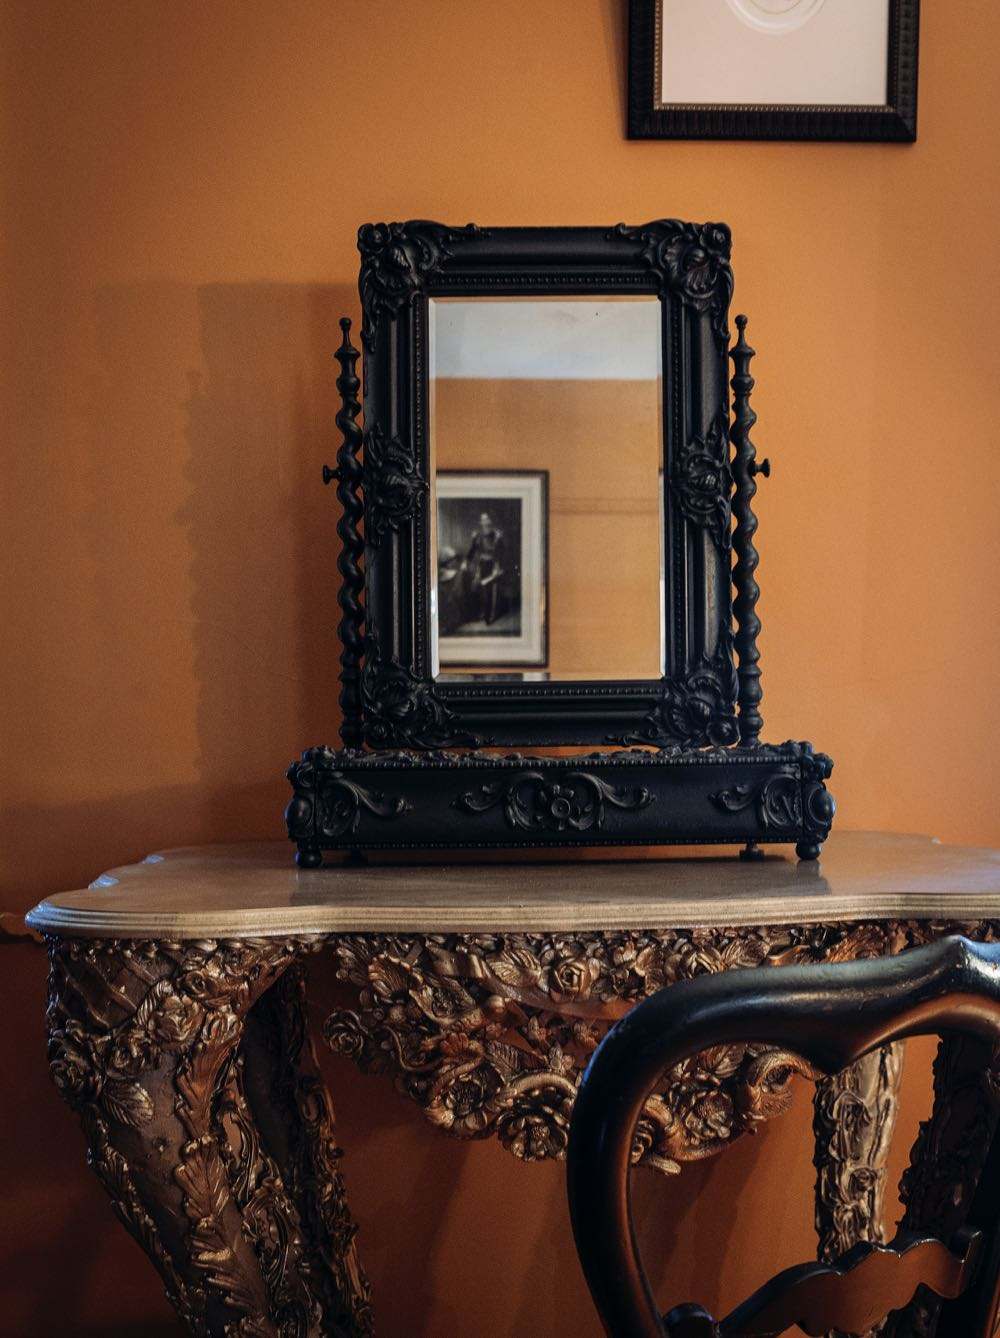 A part of Kate Rohde's Pheasant & Pangolin vitrine, the console table is made from polystyrene and epoxy resin. An early 19th century, elaborately carved dressing table mirror sits upon it.